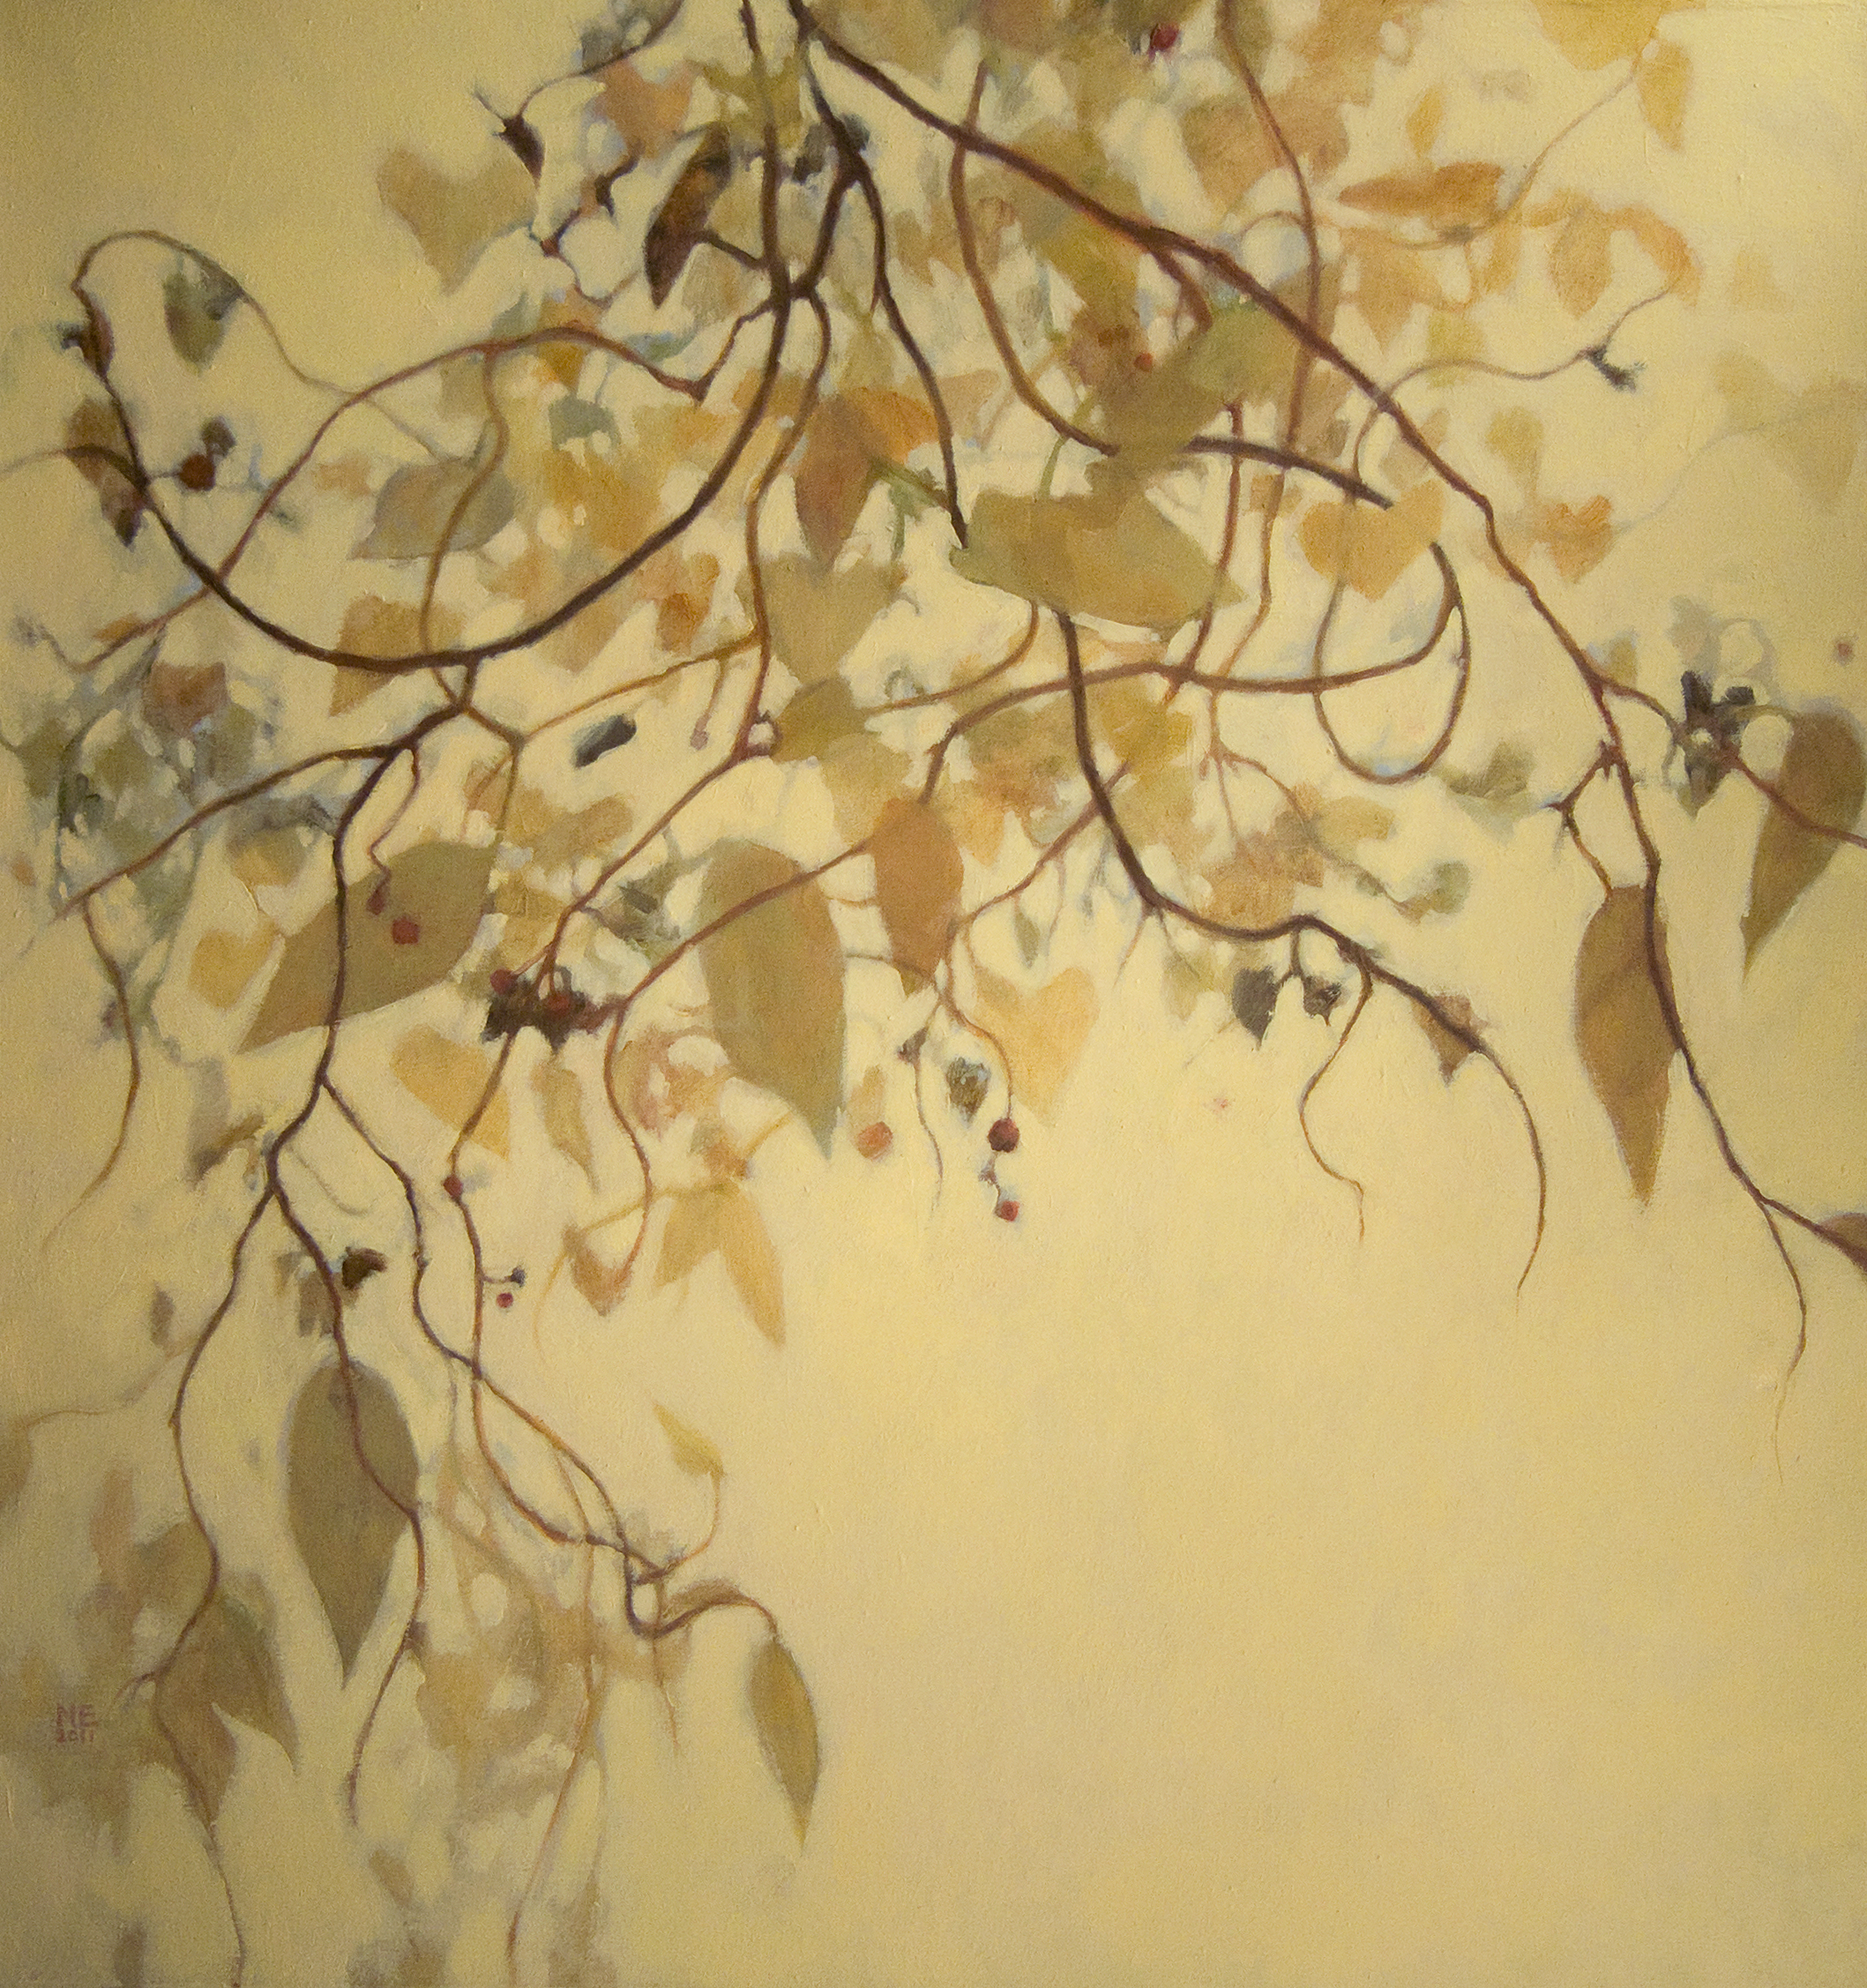 oil painting of flowing tan and brown vines with red accents by Nanci Erskine